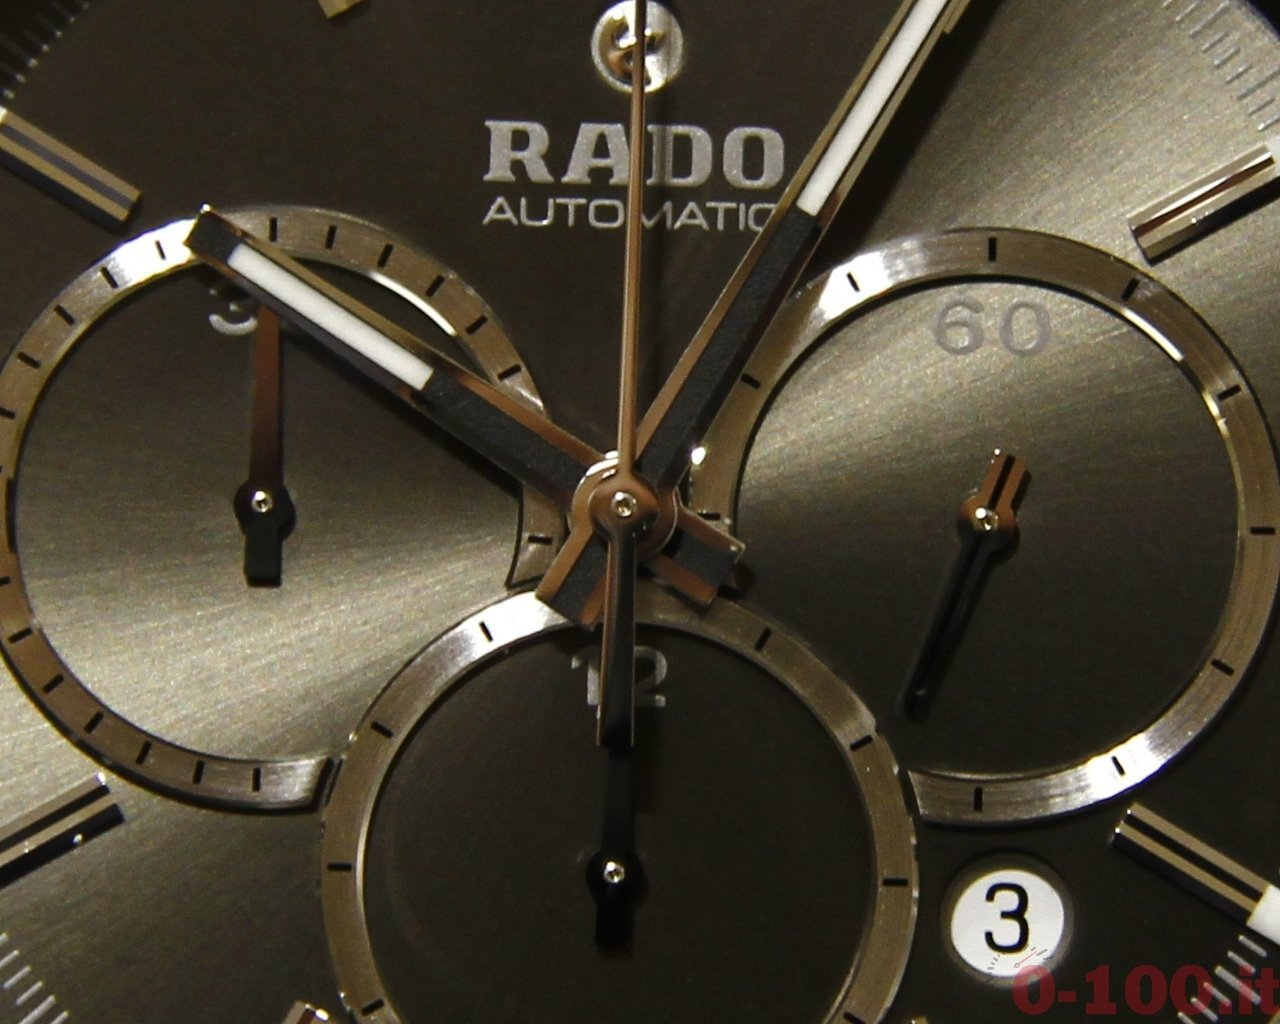 watch-test-rado-hyperchrome-automatic-chronograph-plasma-ceramic-0-100_54